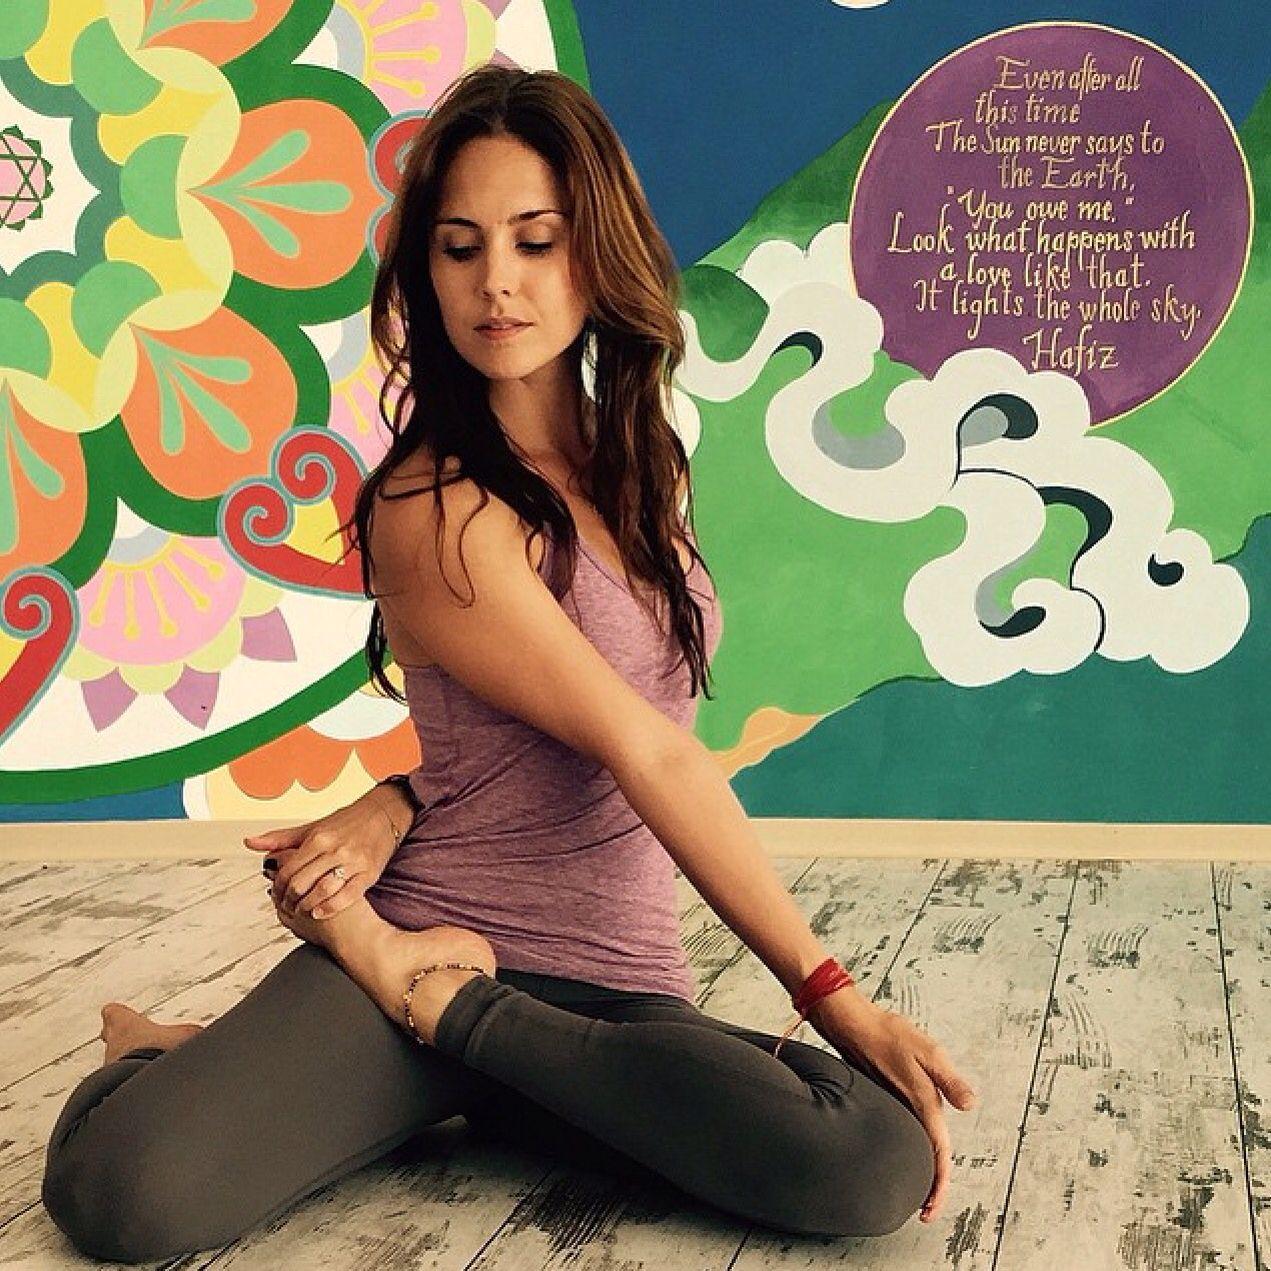 Pin by Juliet on yoga  Pinterest  Yoga inspiration Yoga poses and